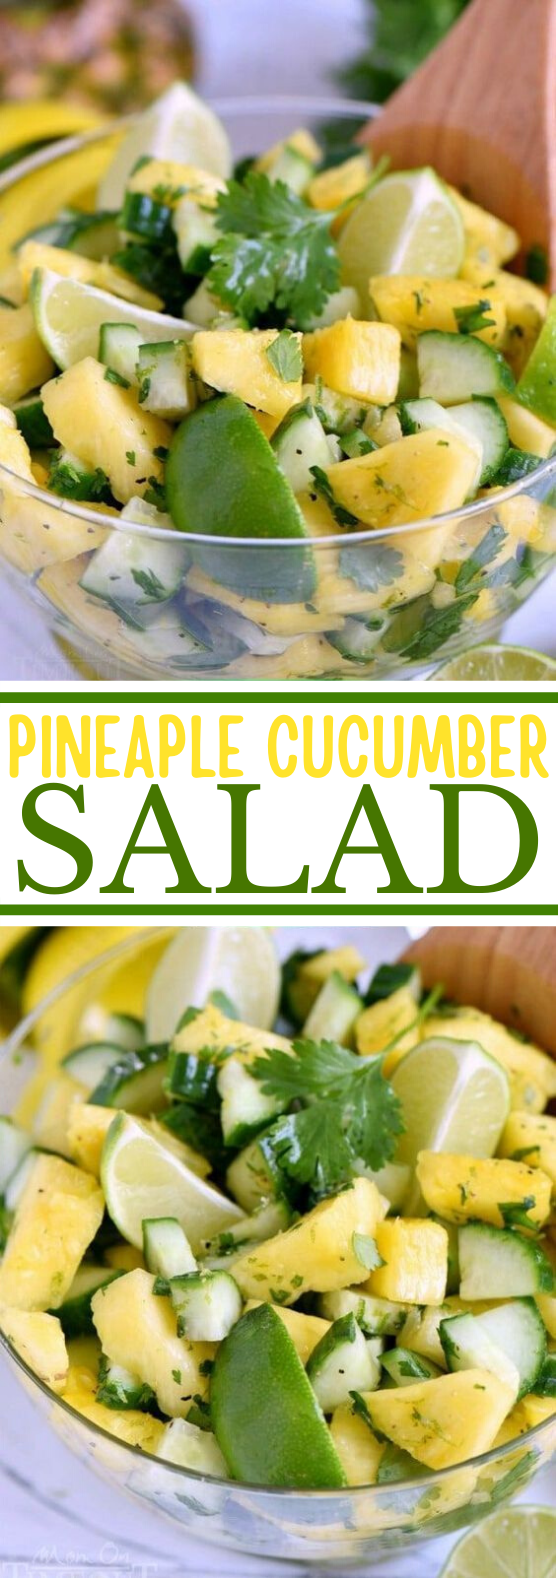 Pineapple Cucumber Salad #vegan #salad #lunch #glutenfree #plantbased